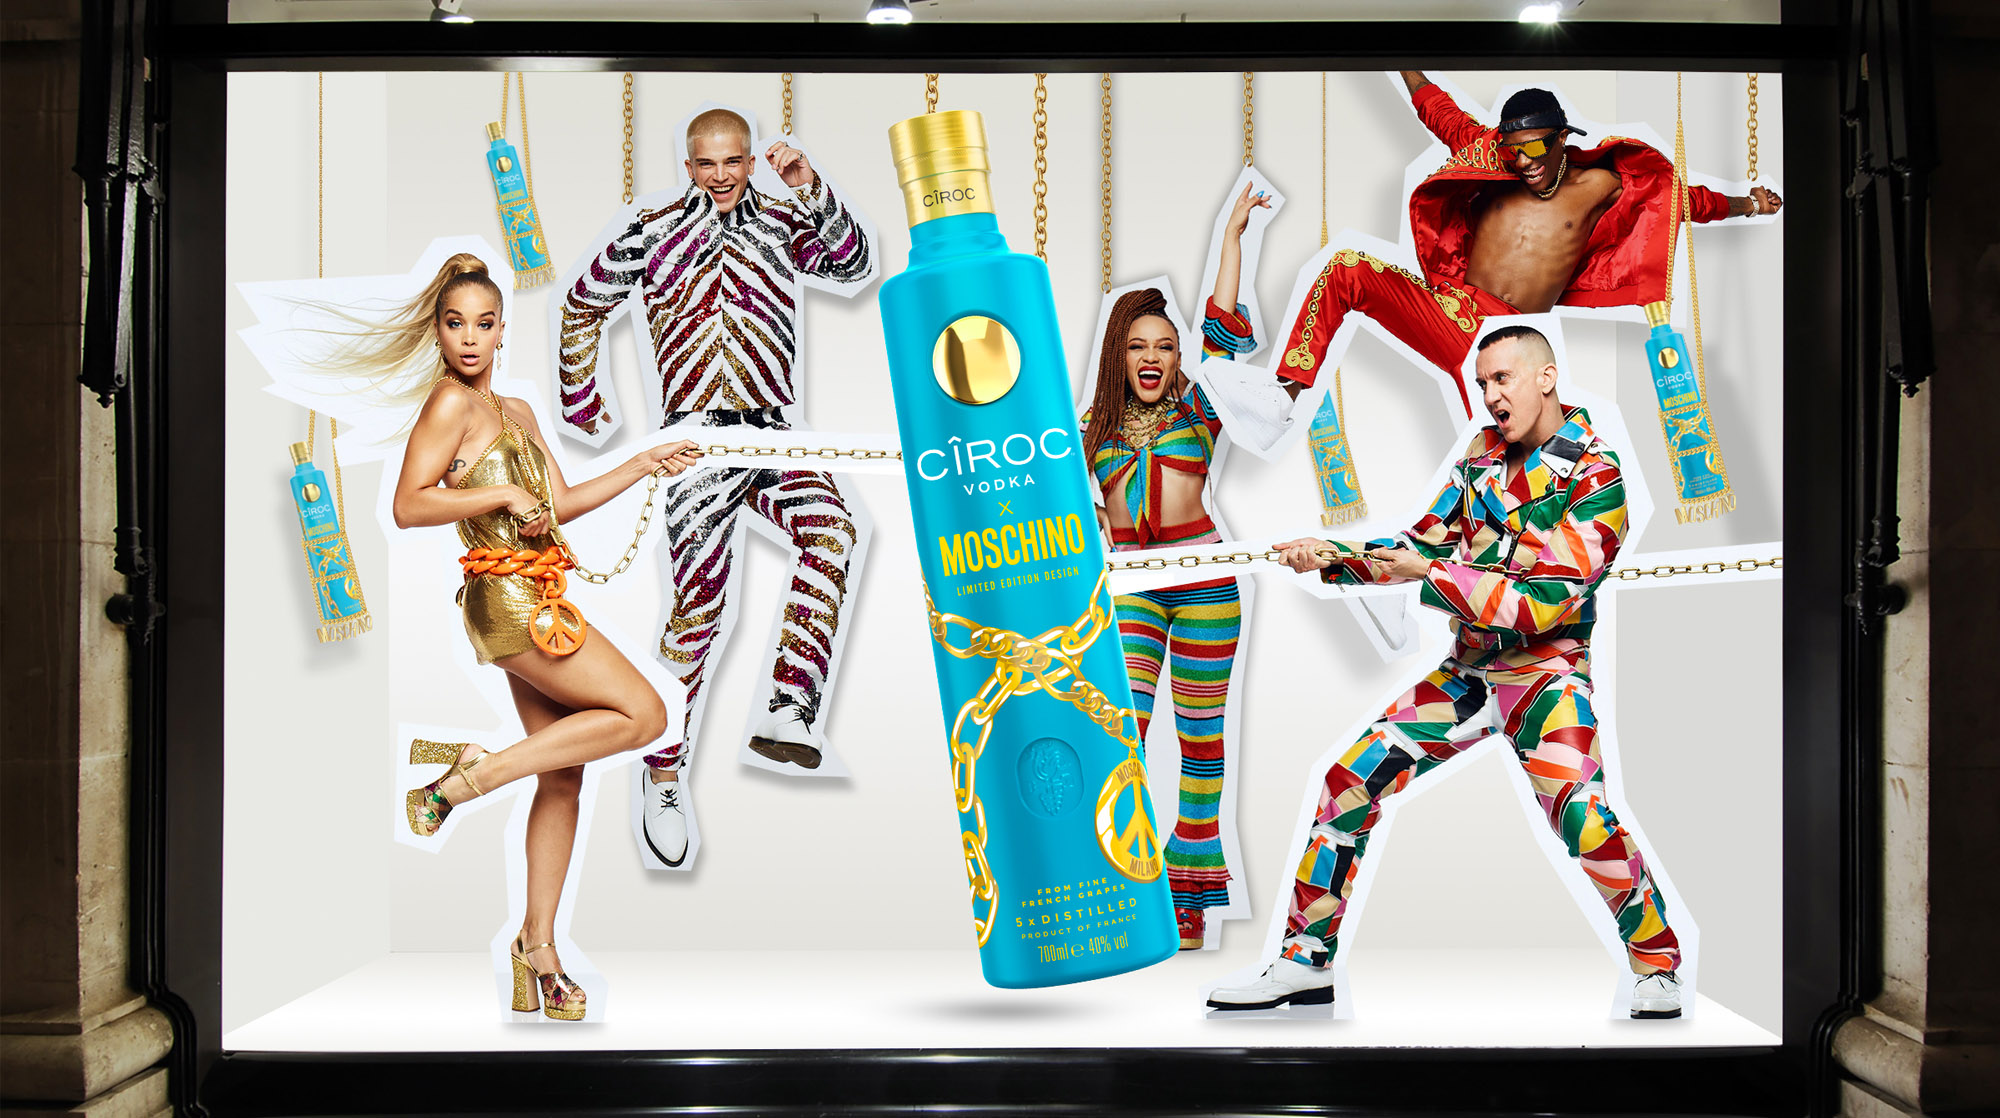 Ciroc x Moschino Store Window.jpg